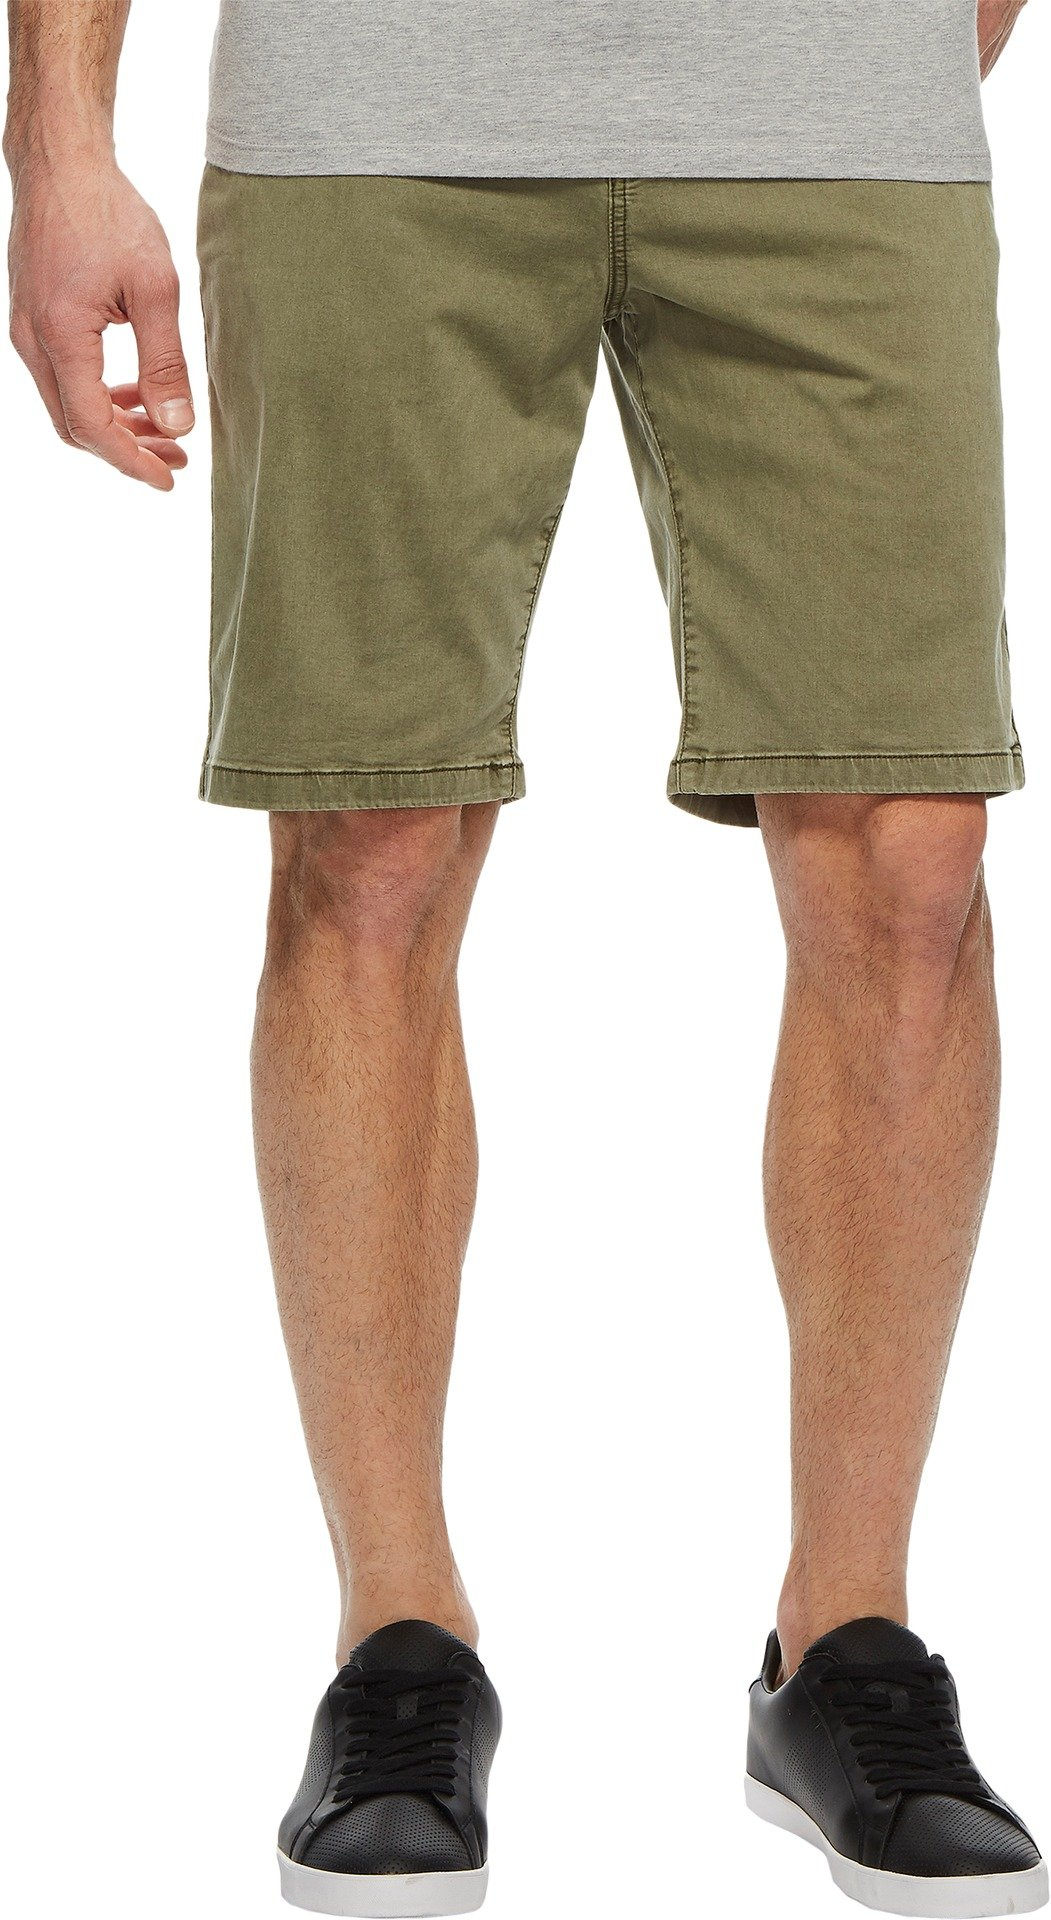 Lucky Brand Men's Stretch Sateen Flat Front Shorts Deep Lichen Green 33W x 9L